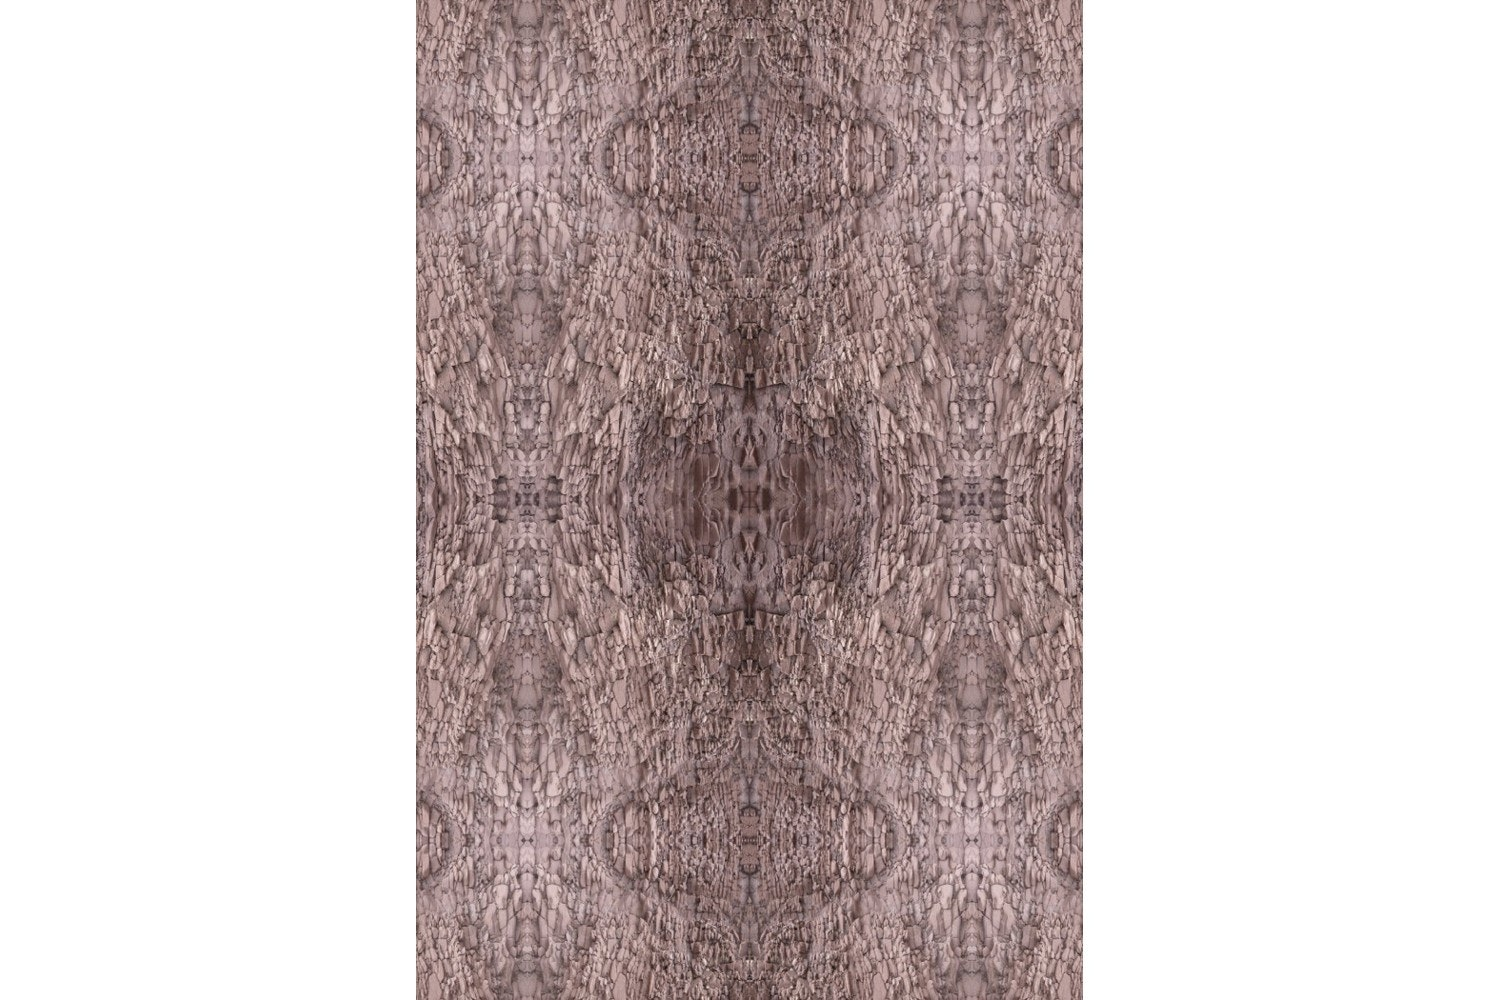 Clay Sediment Rectangle Rug by Ross Lovegrove for Moooi Carpets